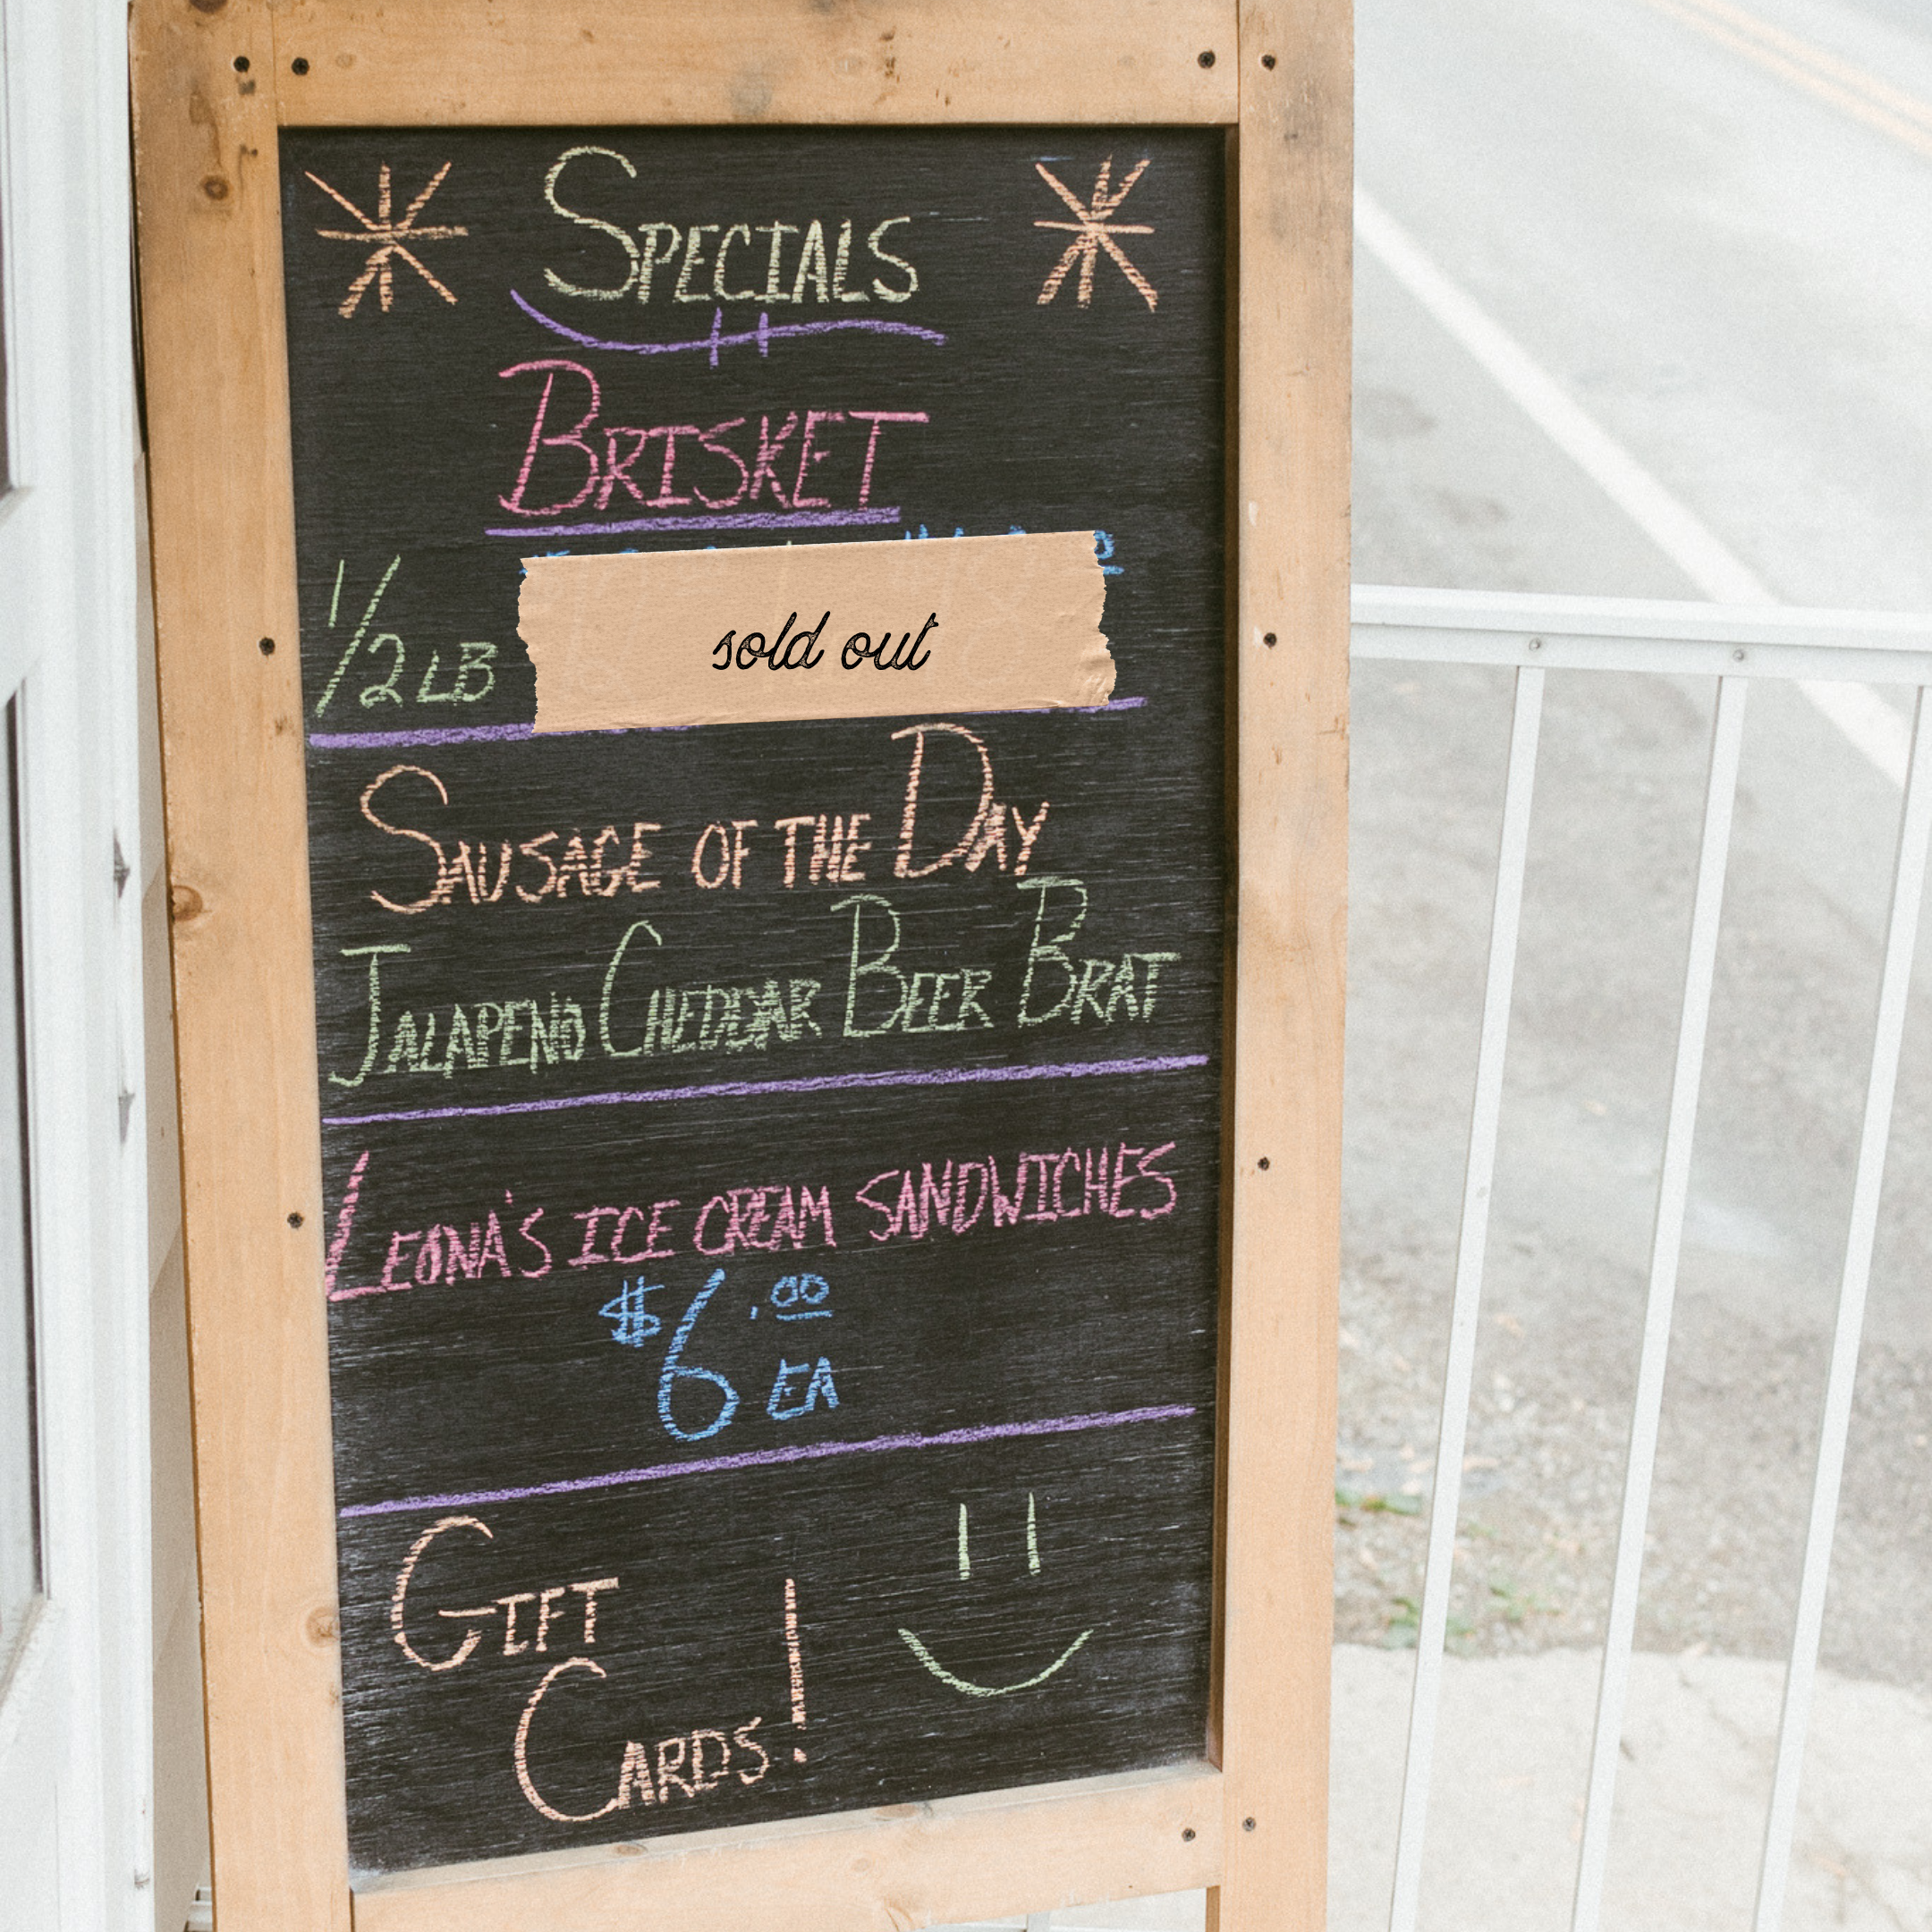 specials board at Hangover BBQ.jpg